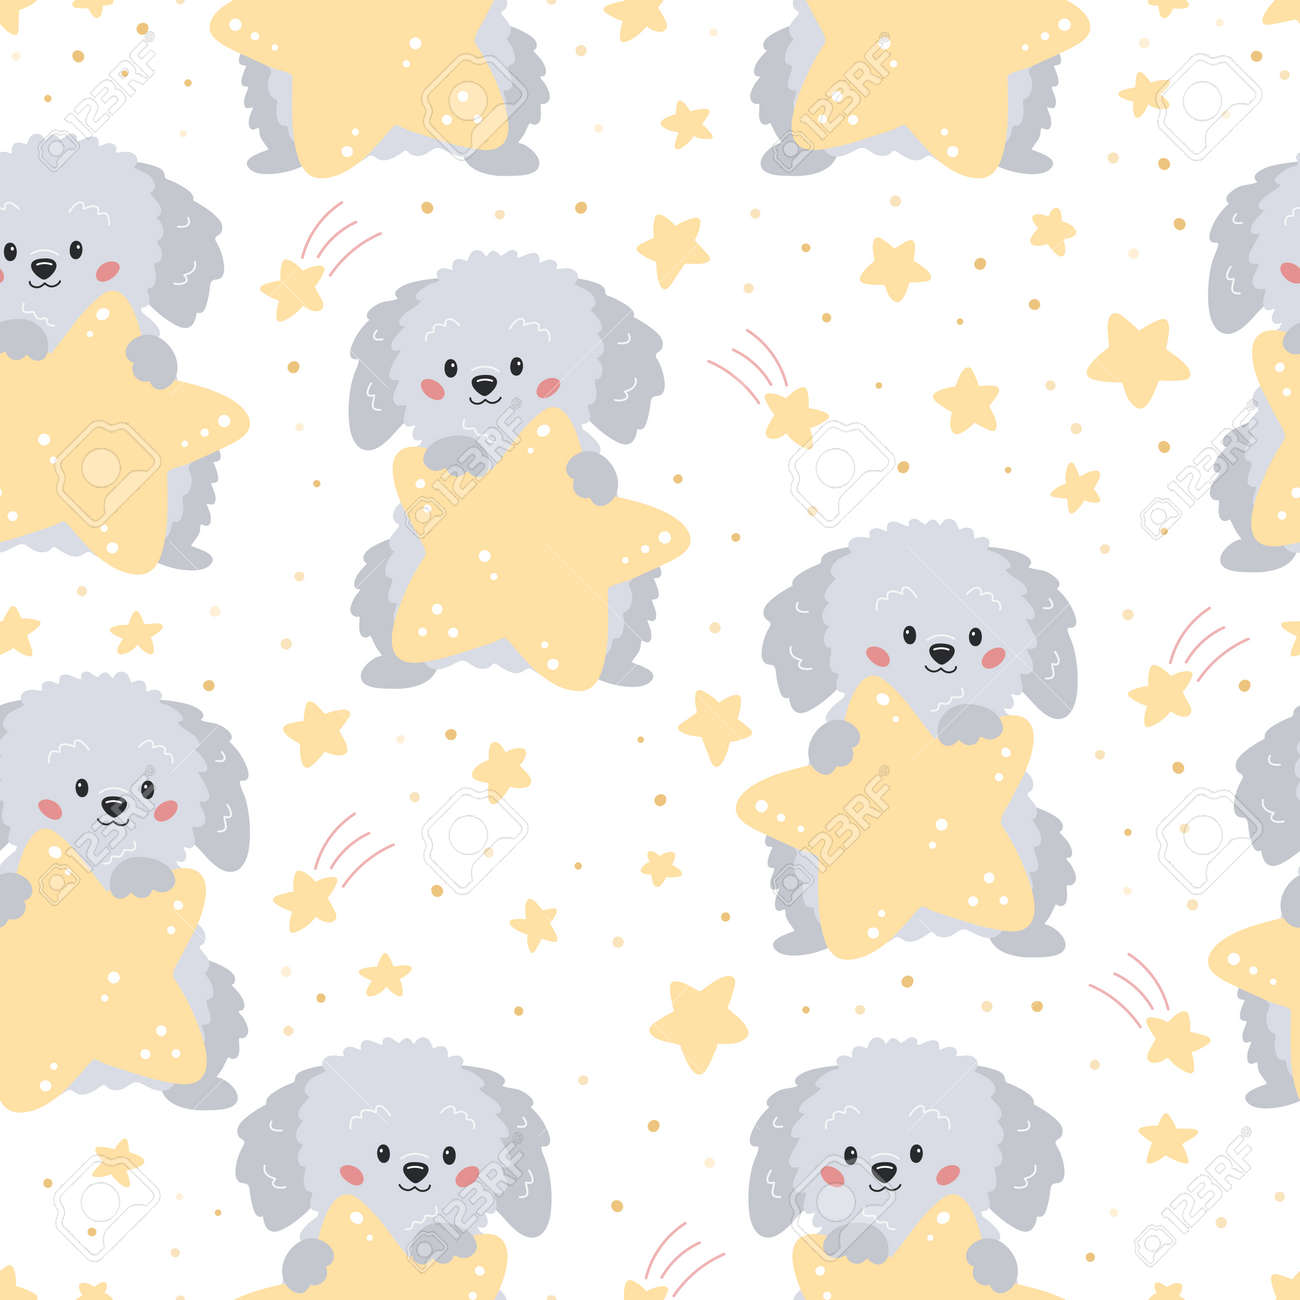 Childish seamless pattern with cute cartoon grey dog and yellow stars on white background. Vector characters. Ideal for textile, wallpaper and print. - 169087137